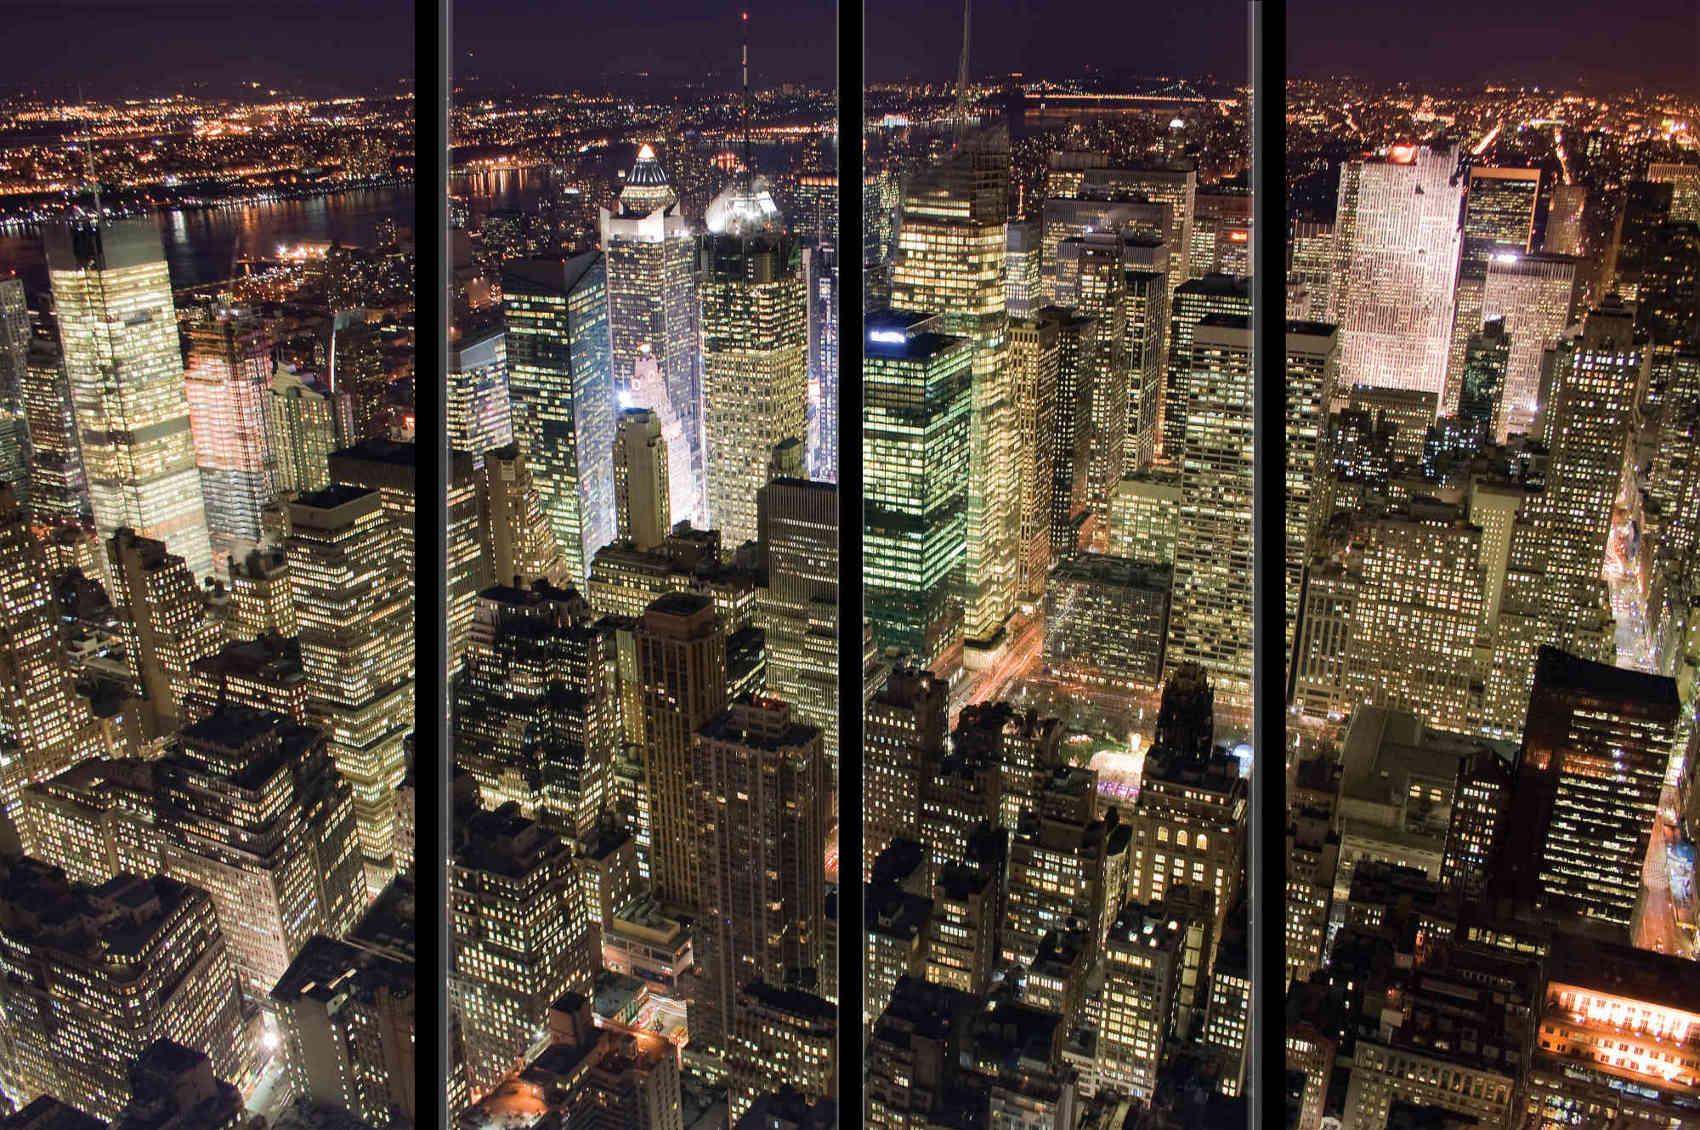 MU1383 - Manhattan at Night with Window Frames